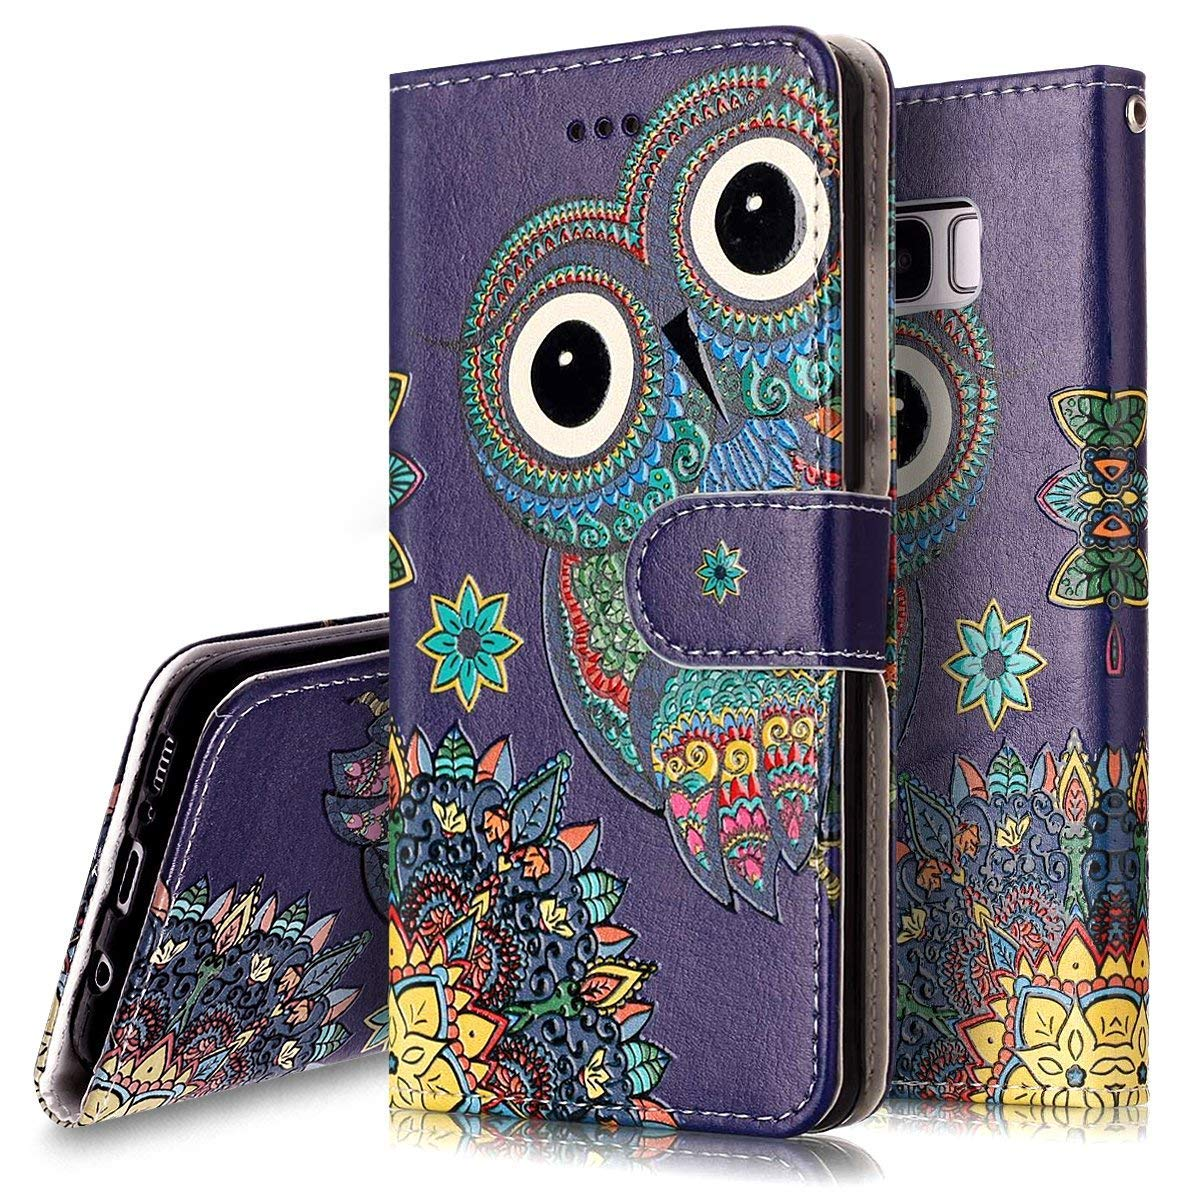 PHEZEN Case for Samsung Galaxy S10 Plus Wallet Case,Retro Art Paint PU Leather Bookstyle Magnetic Stand Flip Folio Case Full Body Protective Phone Case Cover for Galaxy S10 Plus - Totem Owl by PHEZEN